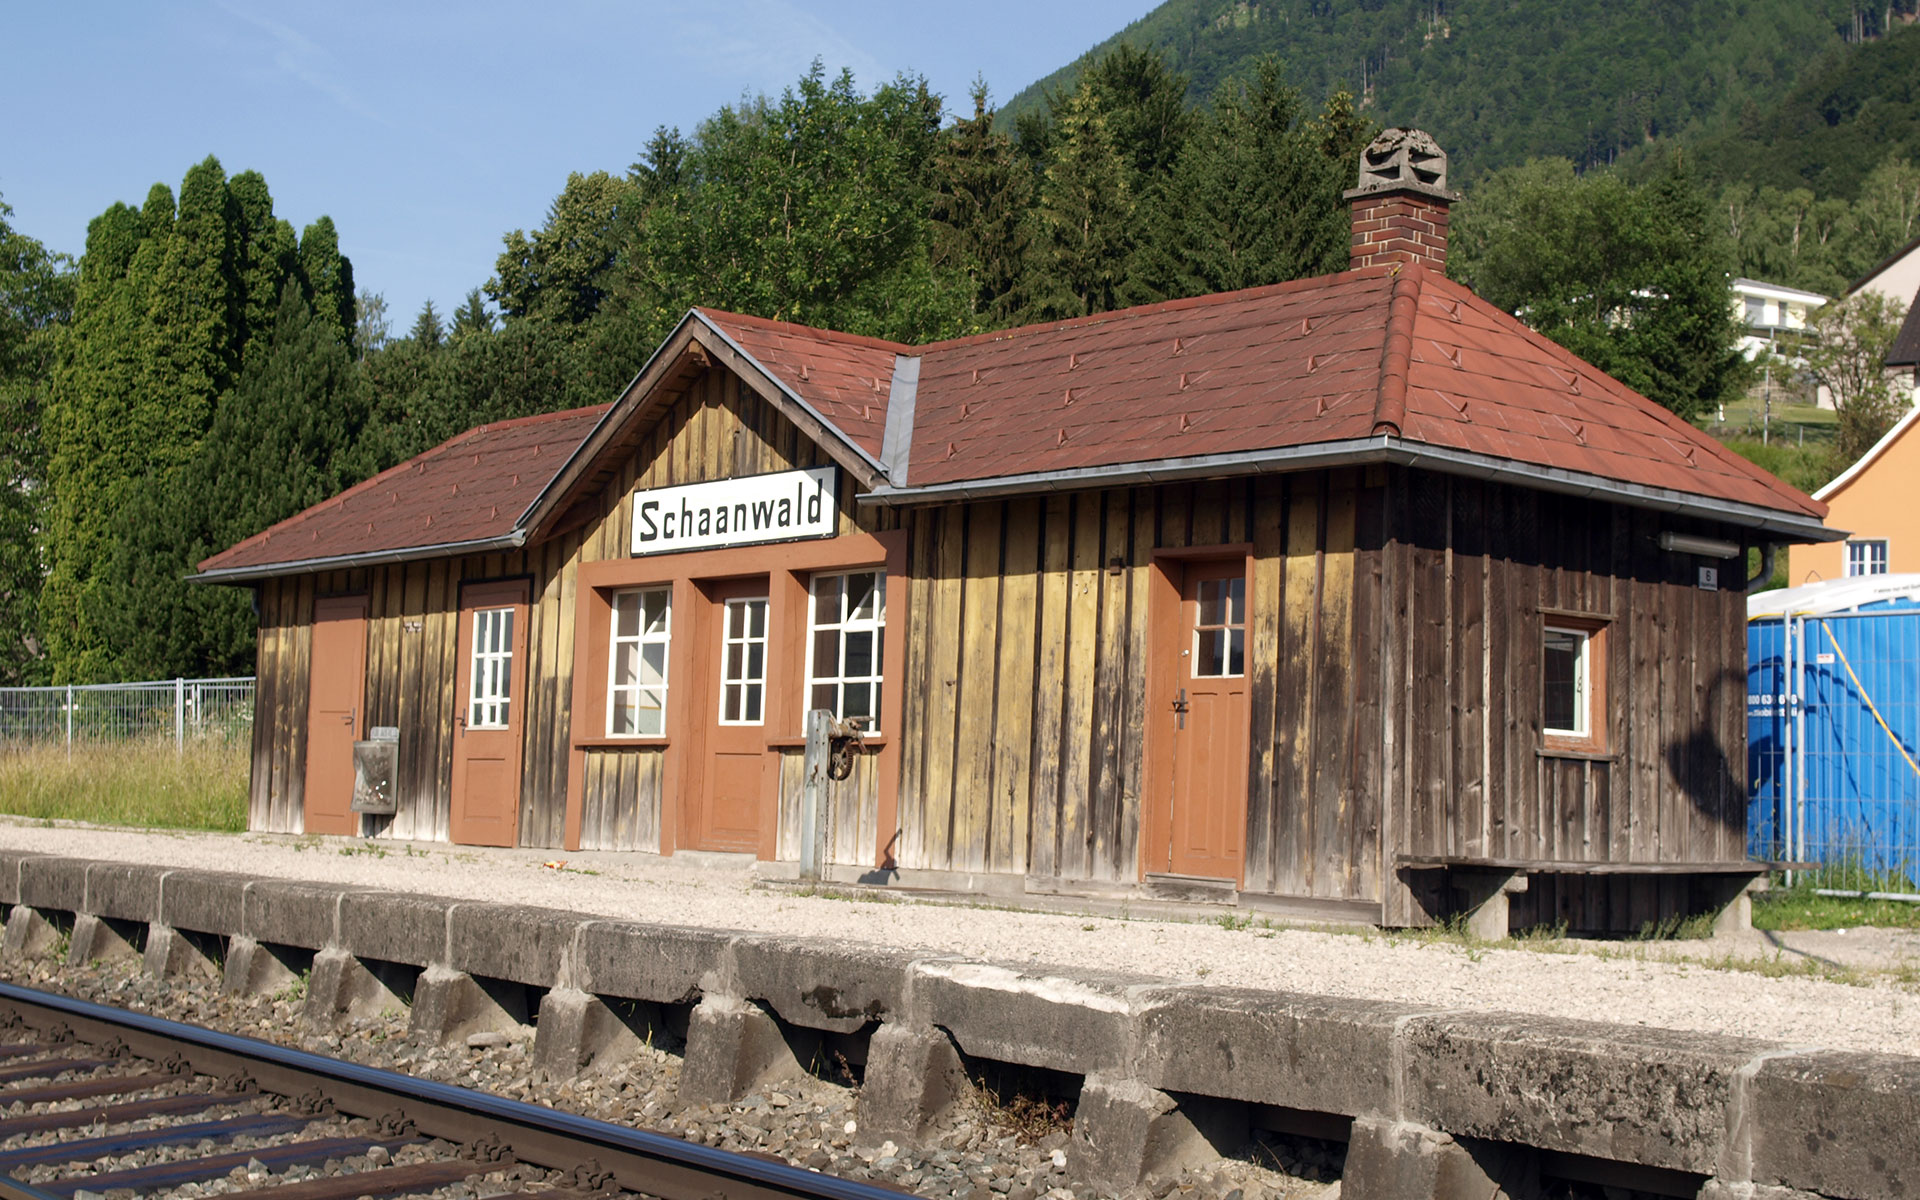 Although Liechtenstein was never formally part of the Habsburg Empire, there are real hints of K&K style in the Principality's railway stations. This is the small halt at Schaanwald, just one kilometre from the border with Austria (photo © hidden europe).